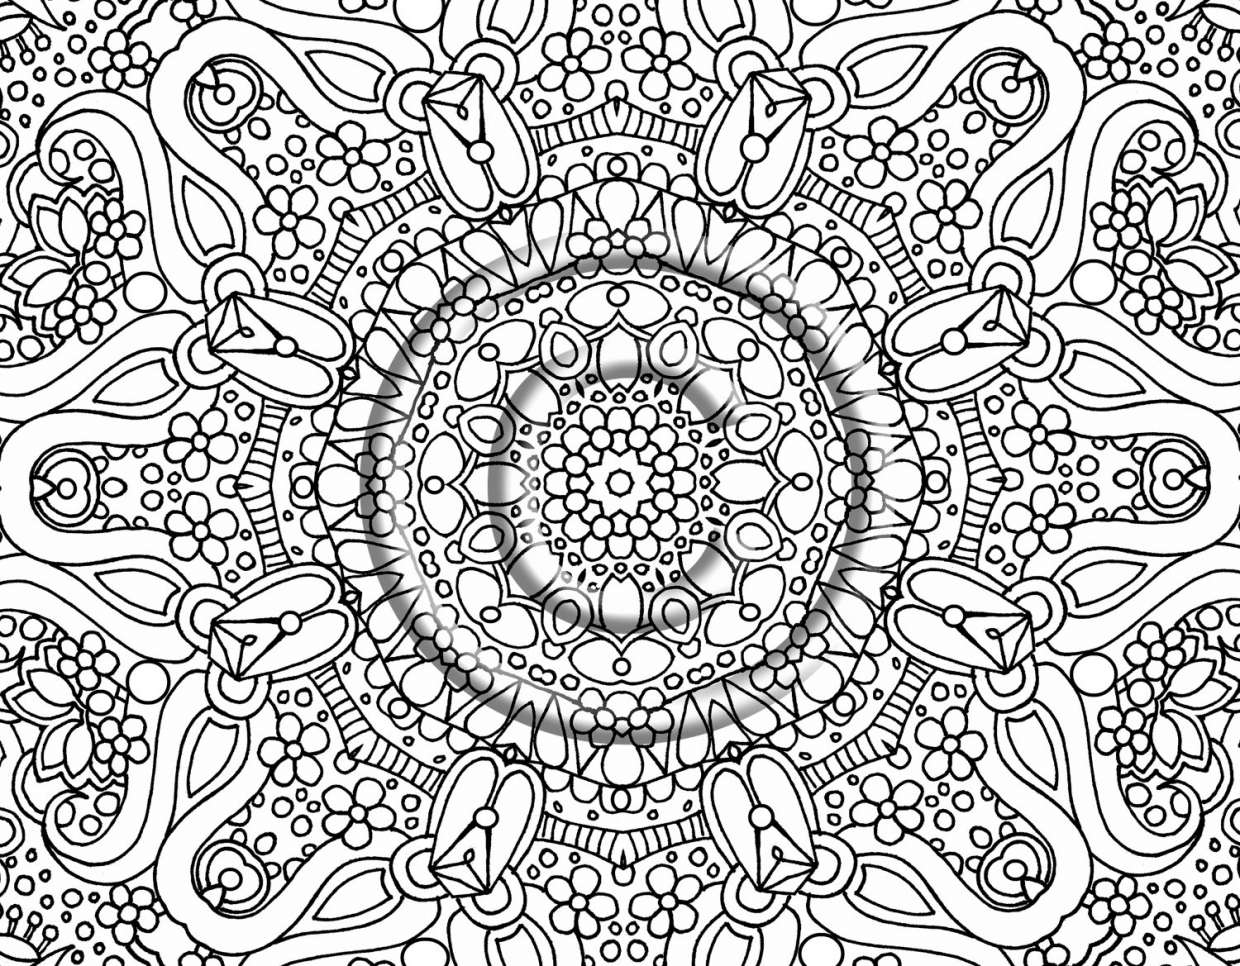 free complex printable coloring pages - photo#20